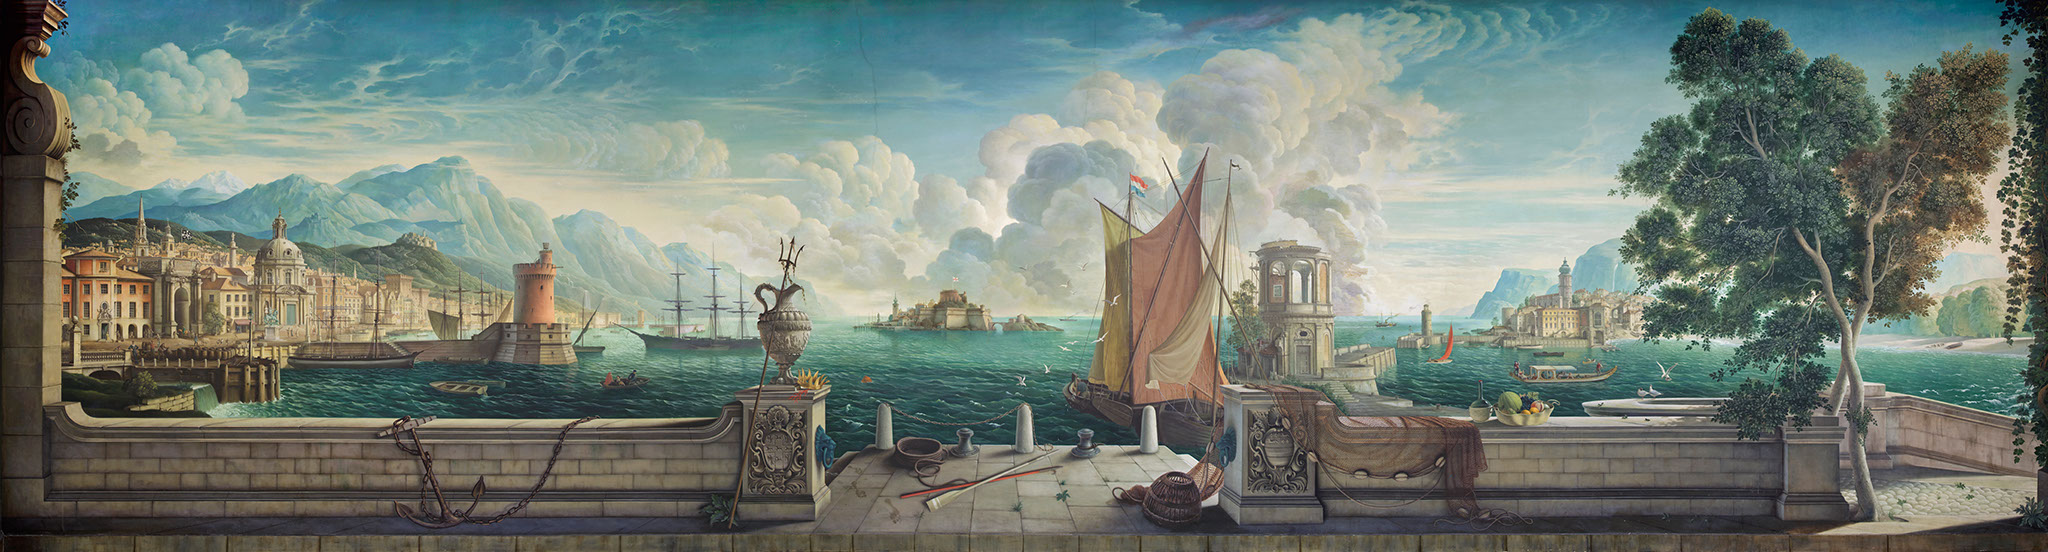 'THE KINGDOM OF THE SEA' AN ITALIAN CAPRICCIO, THE WORK OF AN ARTIST IN LOVE - THE SPIRIT OF LARIA